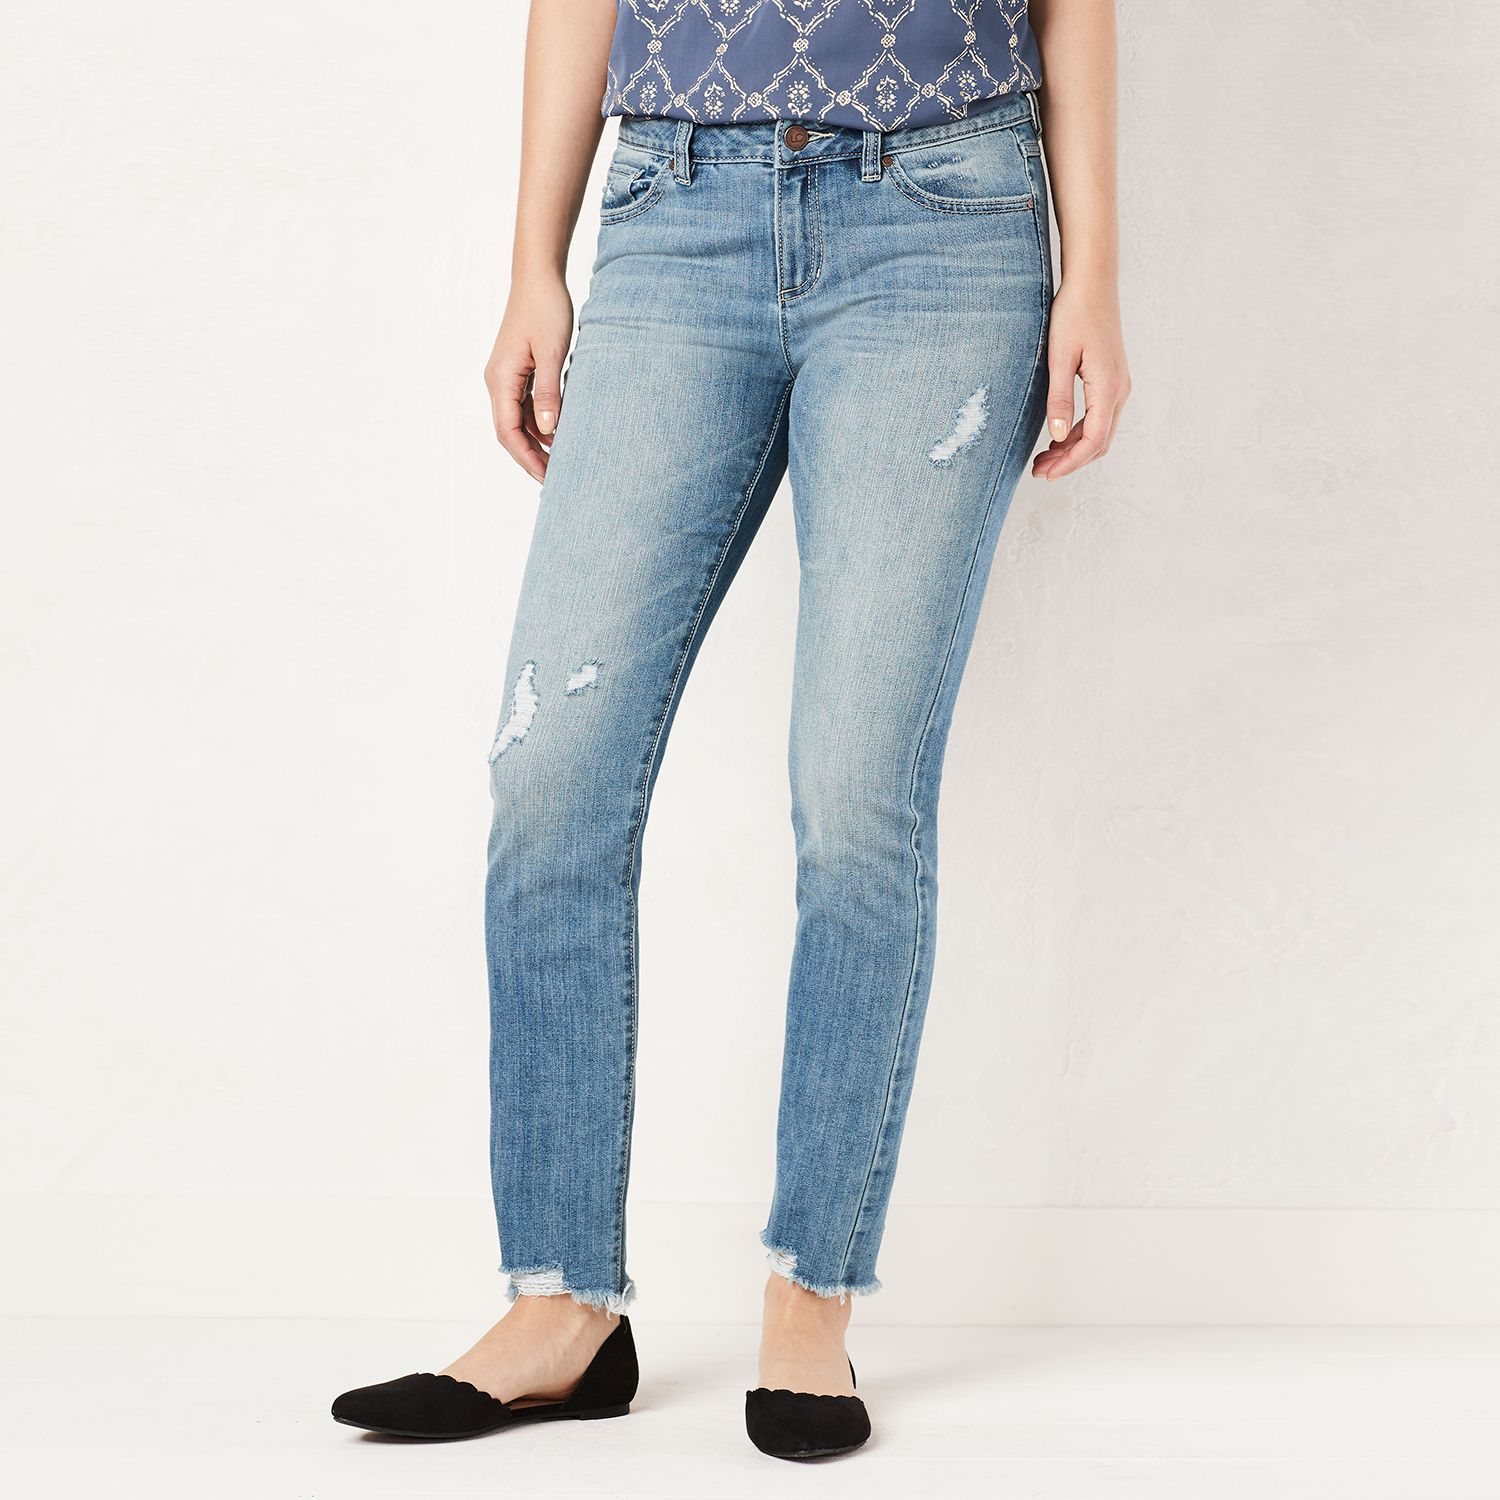 Cheap light denim skinny jeans